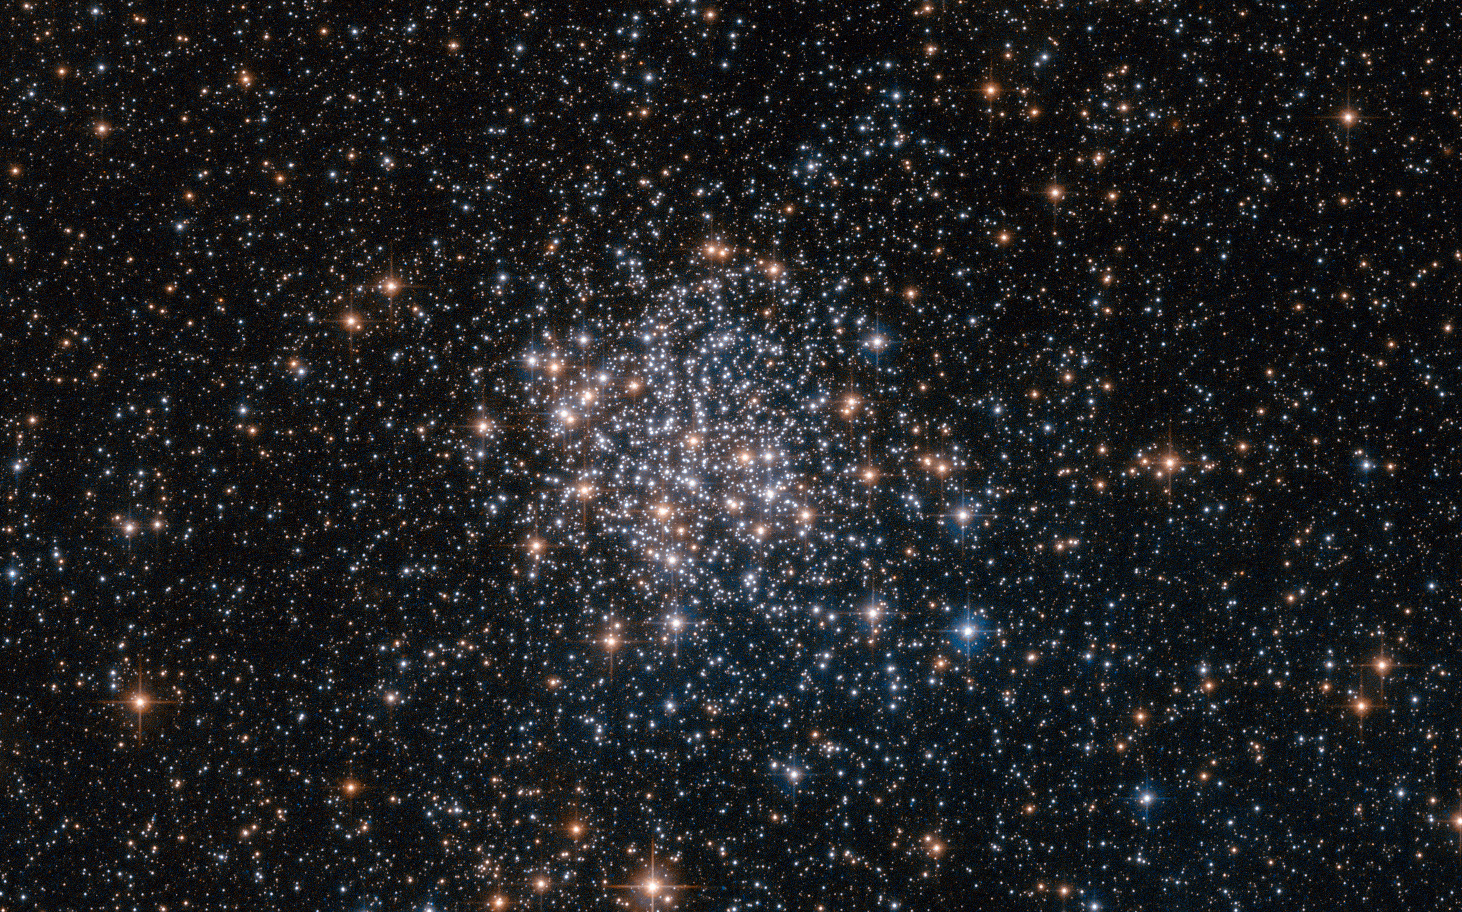 """Magnitude +10.4 globular cluster NGC1854 (α=05h 09m 20.2s, δ=-68° 50' 56"""" J2000.0) was discovered in 1826 by James Dunlop. It lies 135,000 light-years away in the Large Magellanic Cloud. This Hubble Space Telescope view is just 2.4 x 1.5arcminutes in size. Click the image for a larger version. Image credit: ESA/Hubble & NASA."""